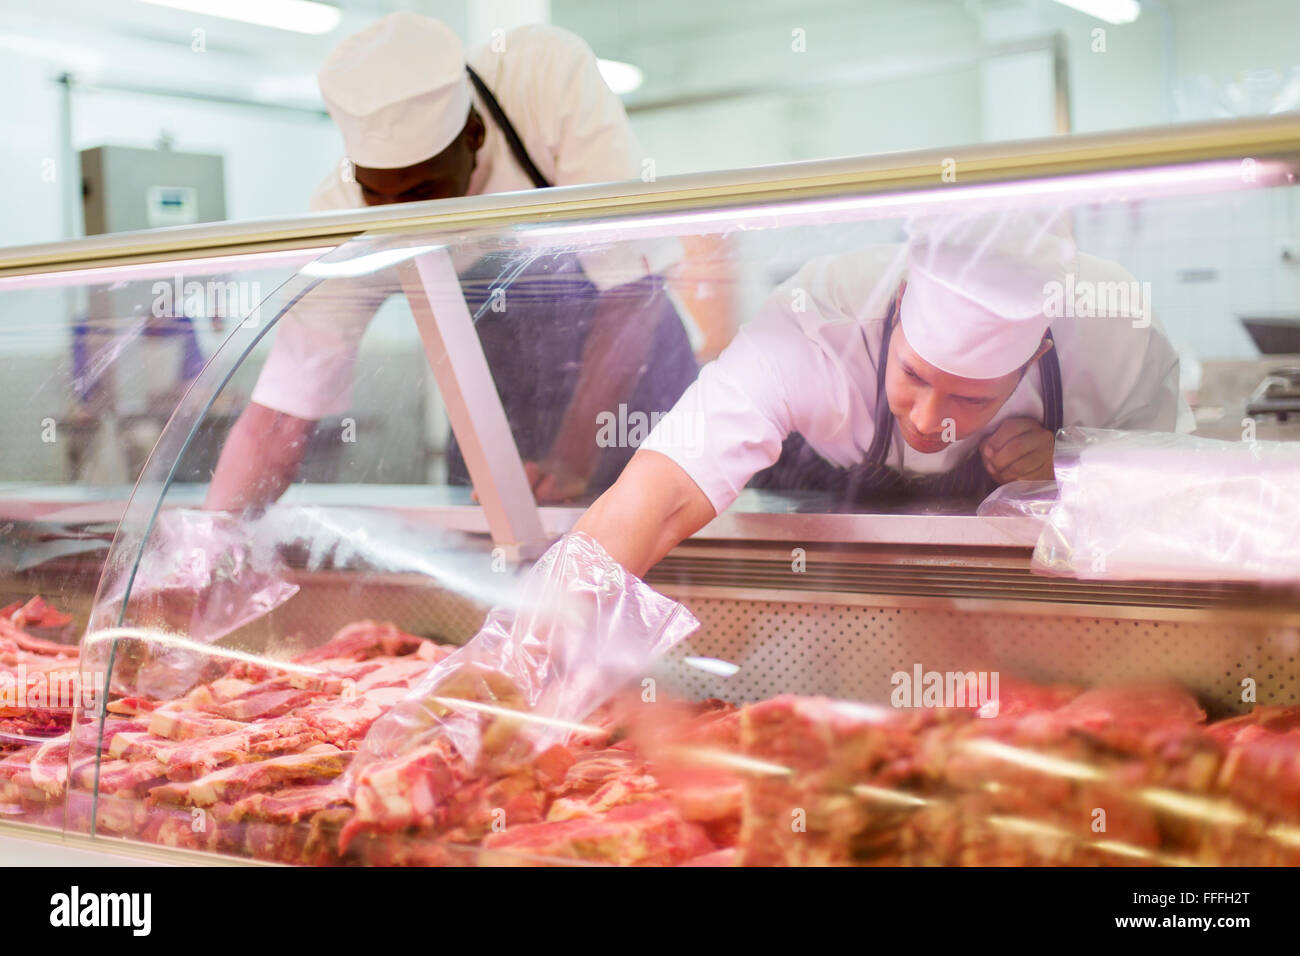 two butchers working in butchery - Stock Image